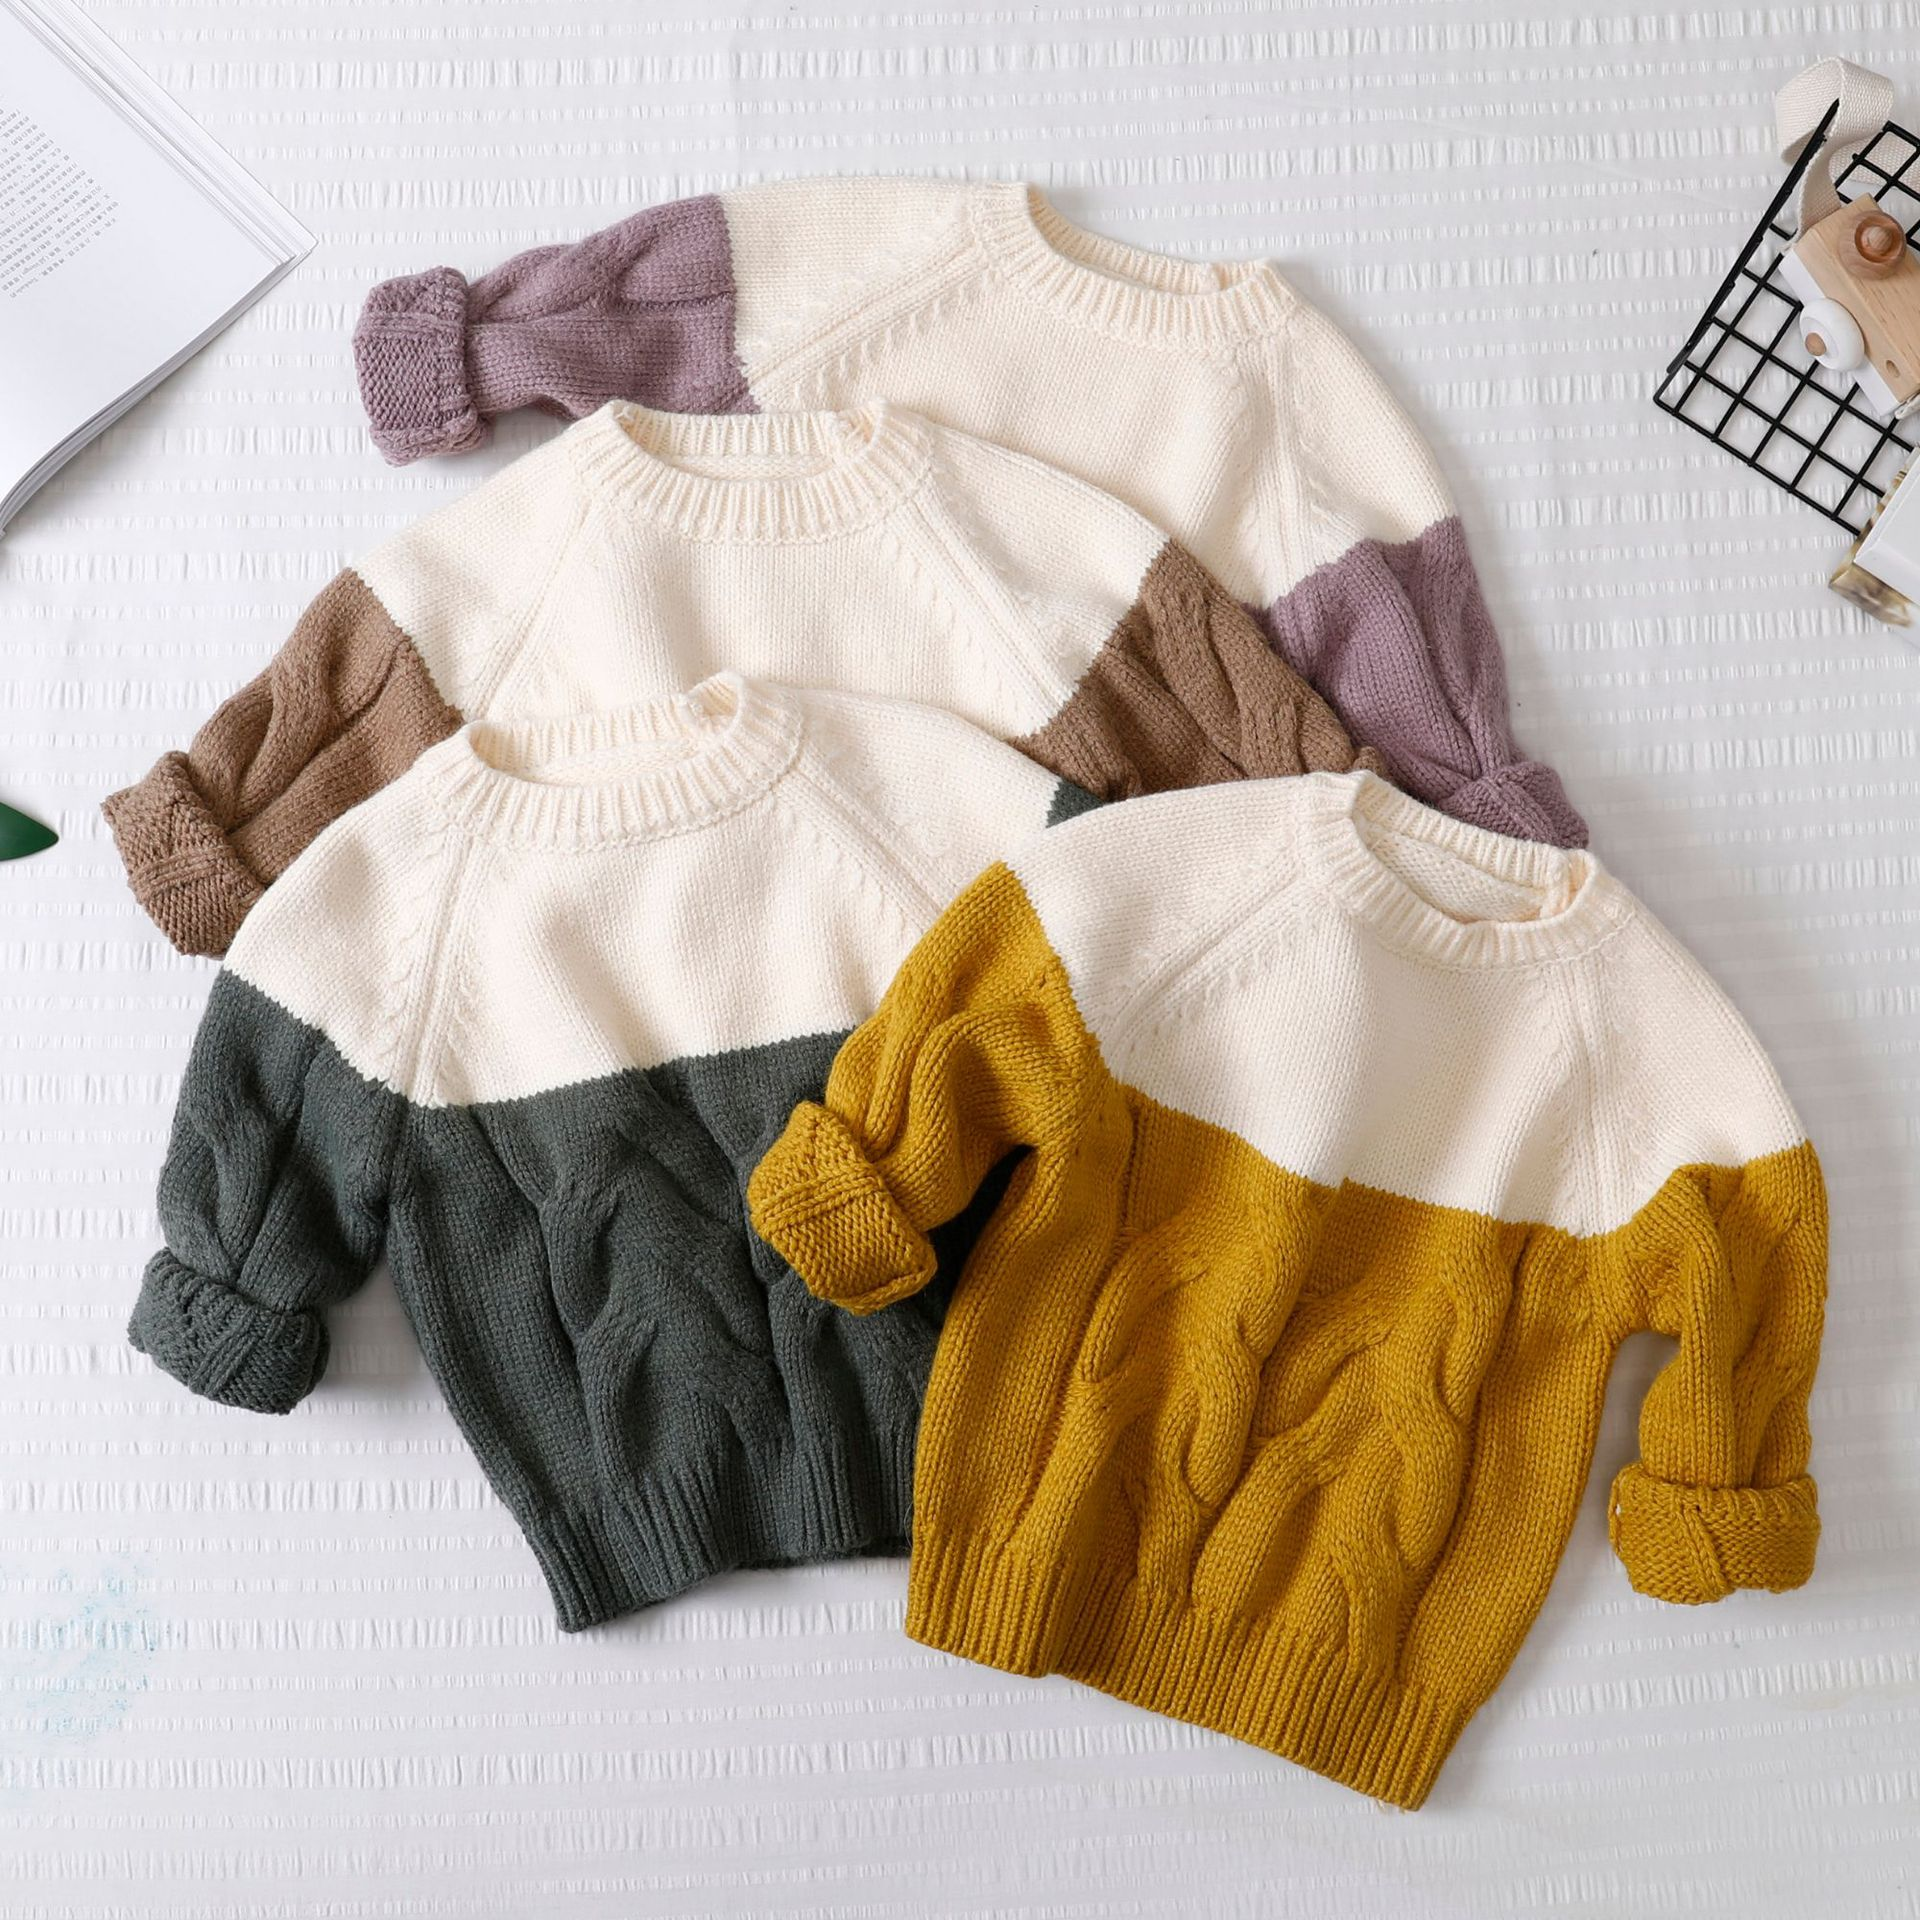 Children's Sweaters 2018 Autumn Winter New Kids Christmas Clothing Fashion O-neck Patchwork Knit Long Sleeve Pullover Sweaters women s sweater pullover 100% genuine goat cashmere women sweaters and pullovers knit round neck long sleeves thick sweaters